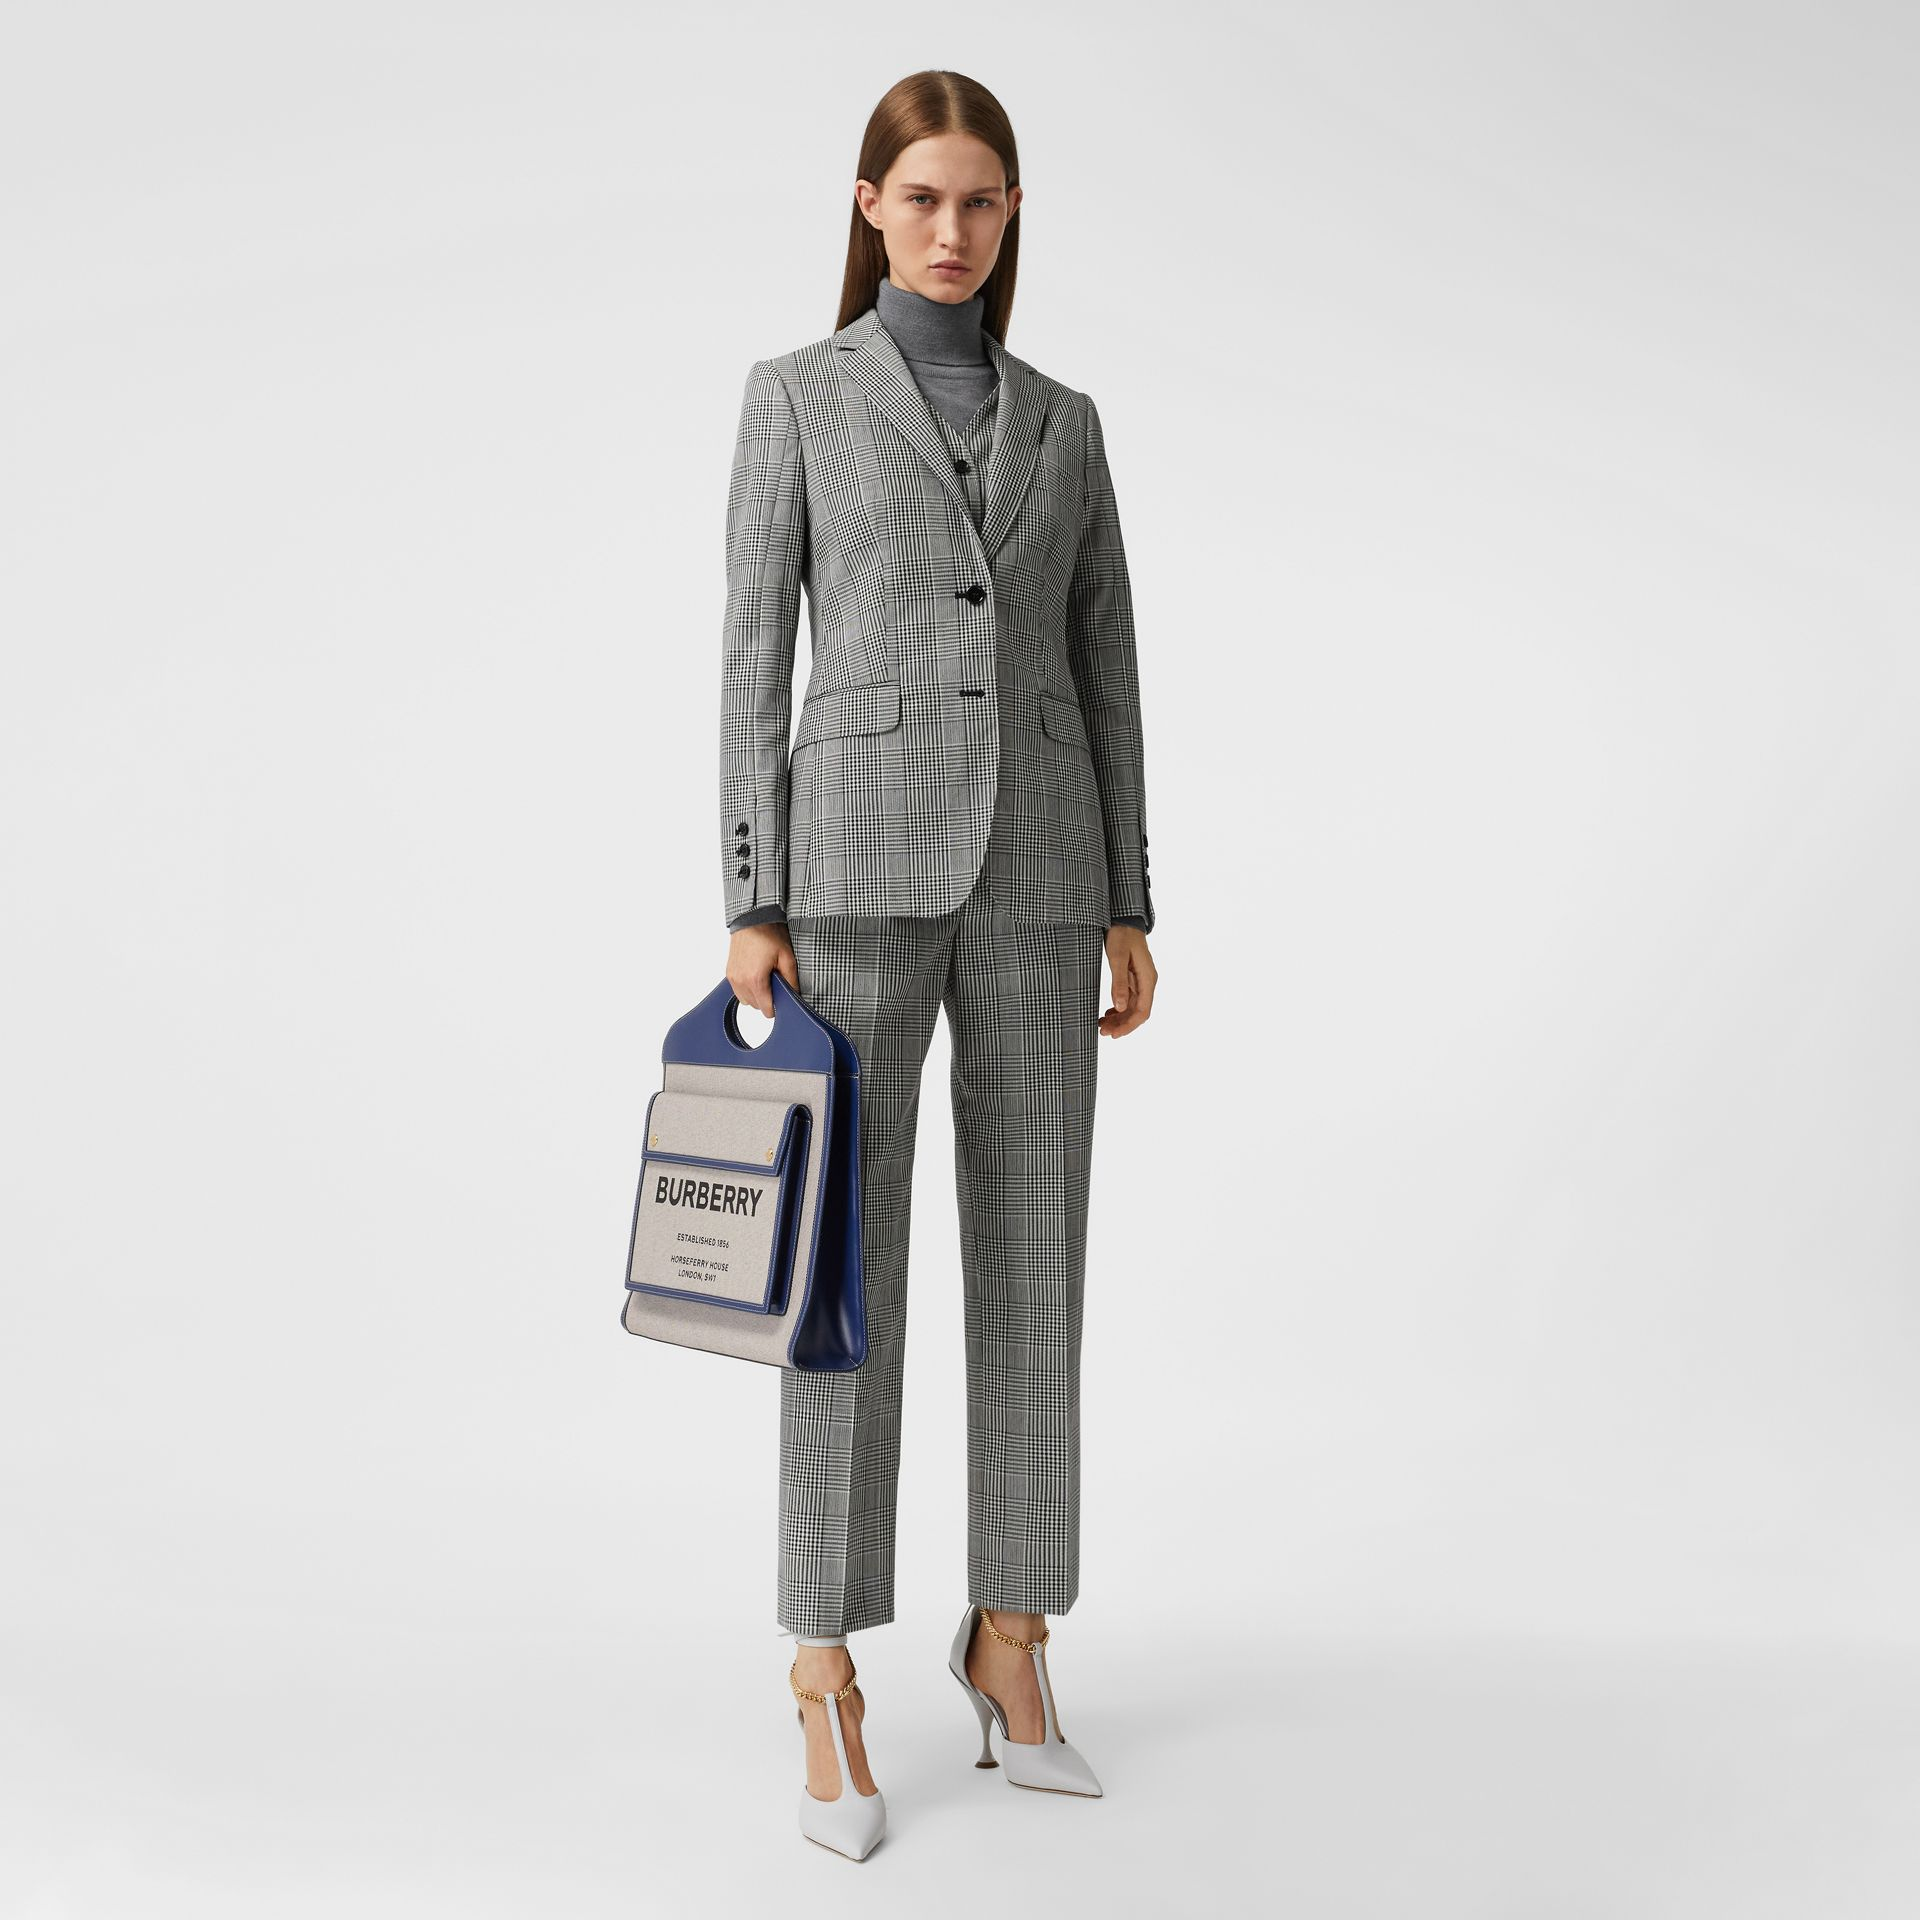 Medium Two-tone Canvas and Leather Pocket Bag in Ink Navy - Women | Burberry - gallery image 5